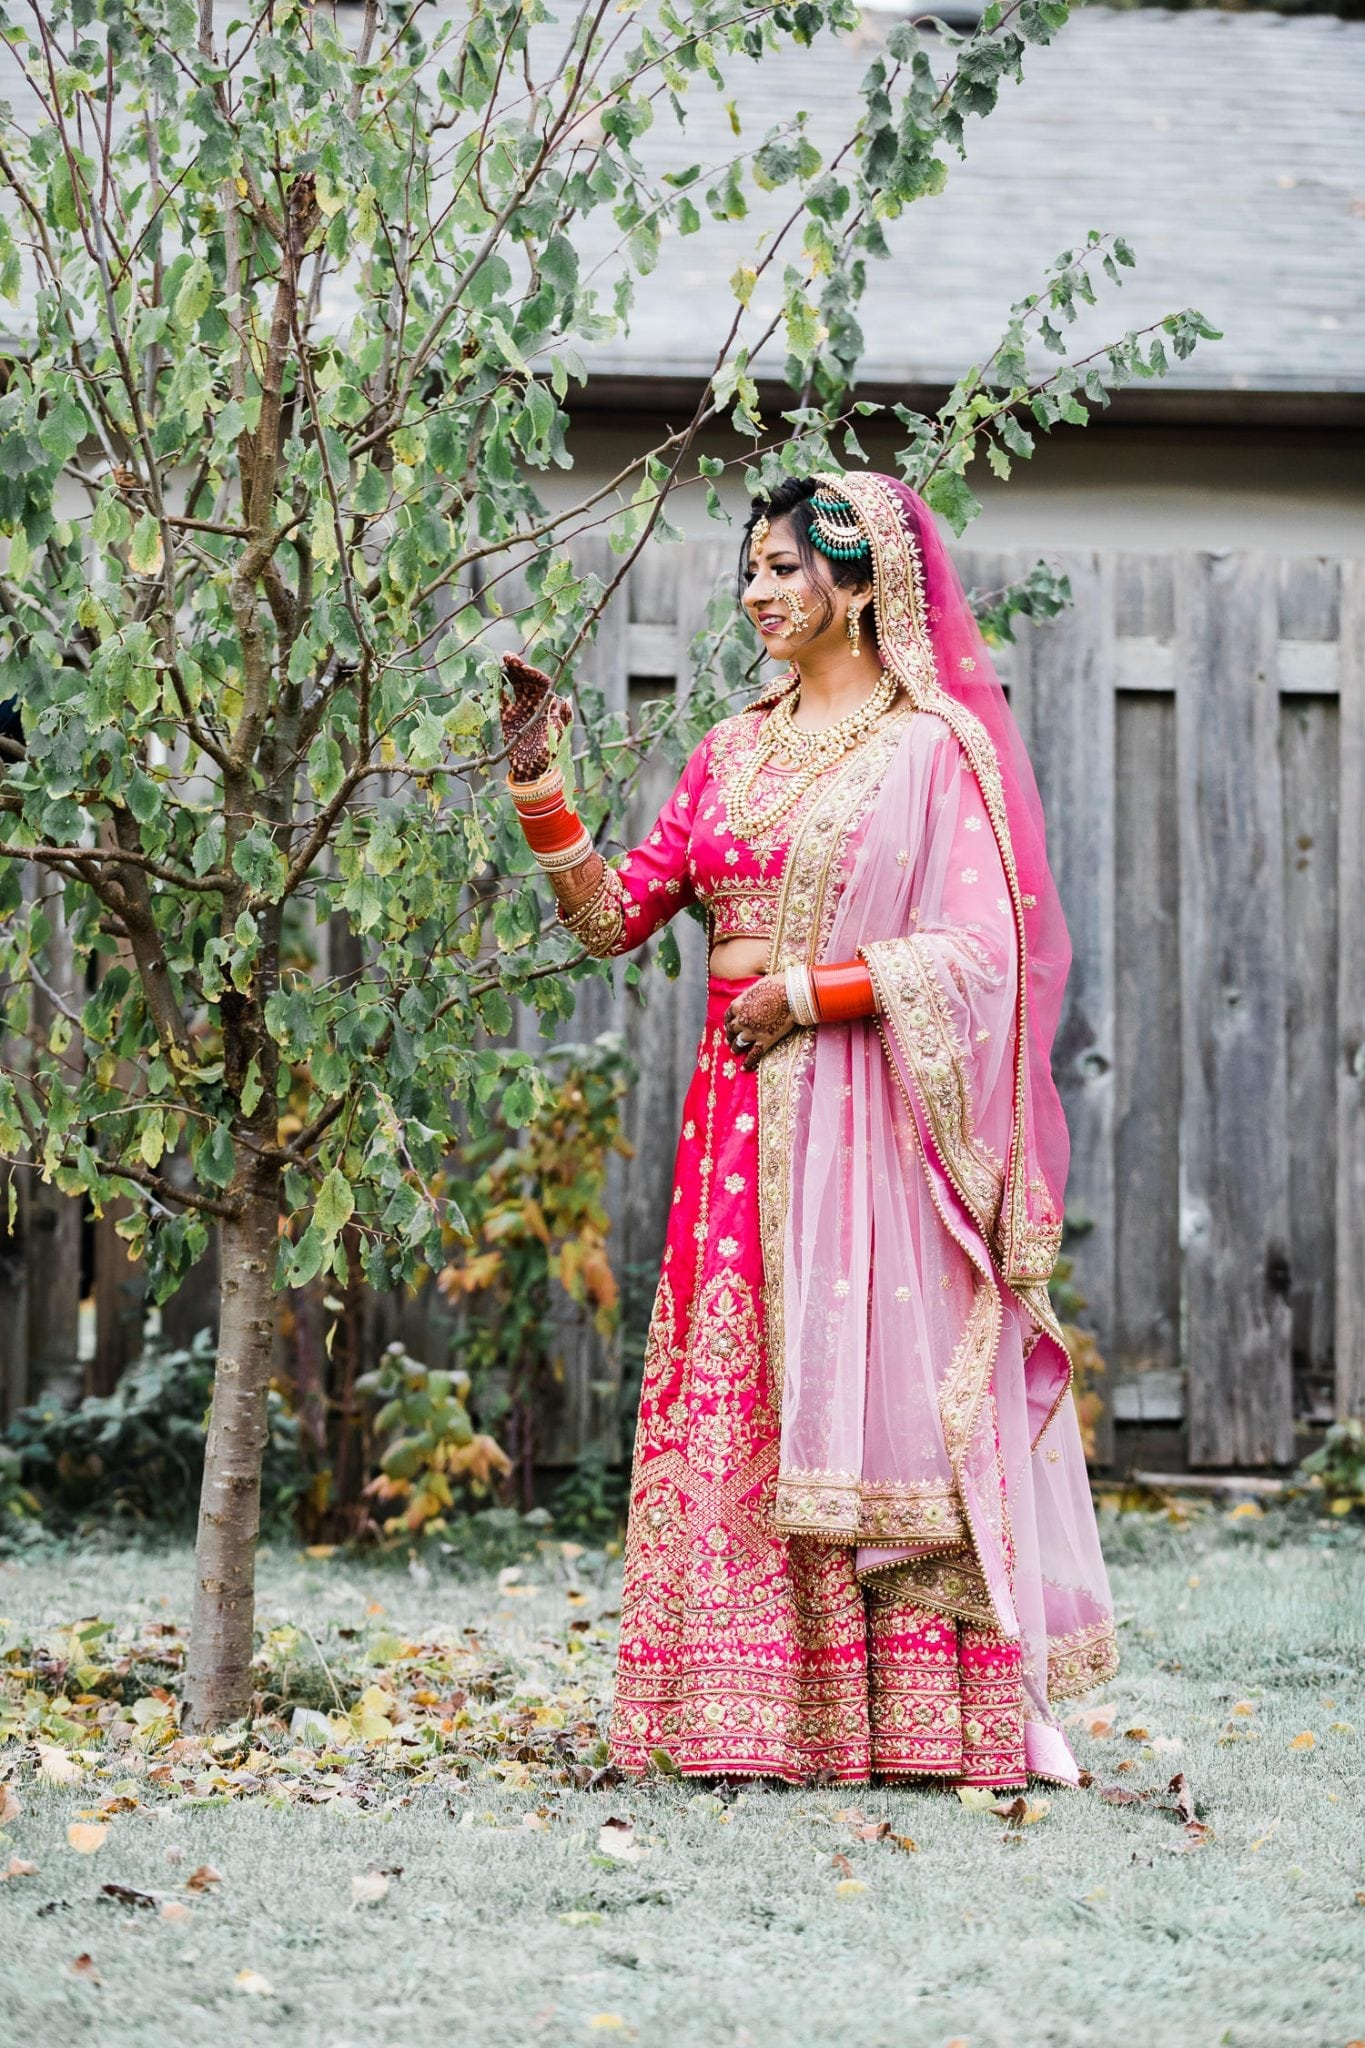 Indian bride in her outfit | Indian wedding photography Vancouver